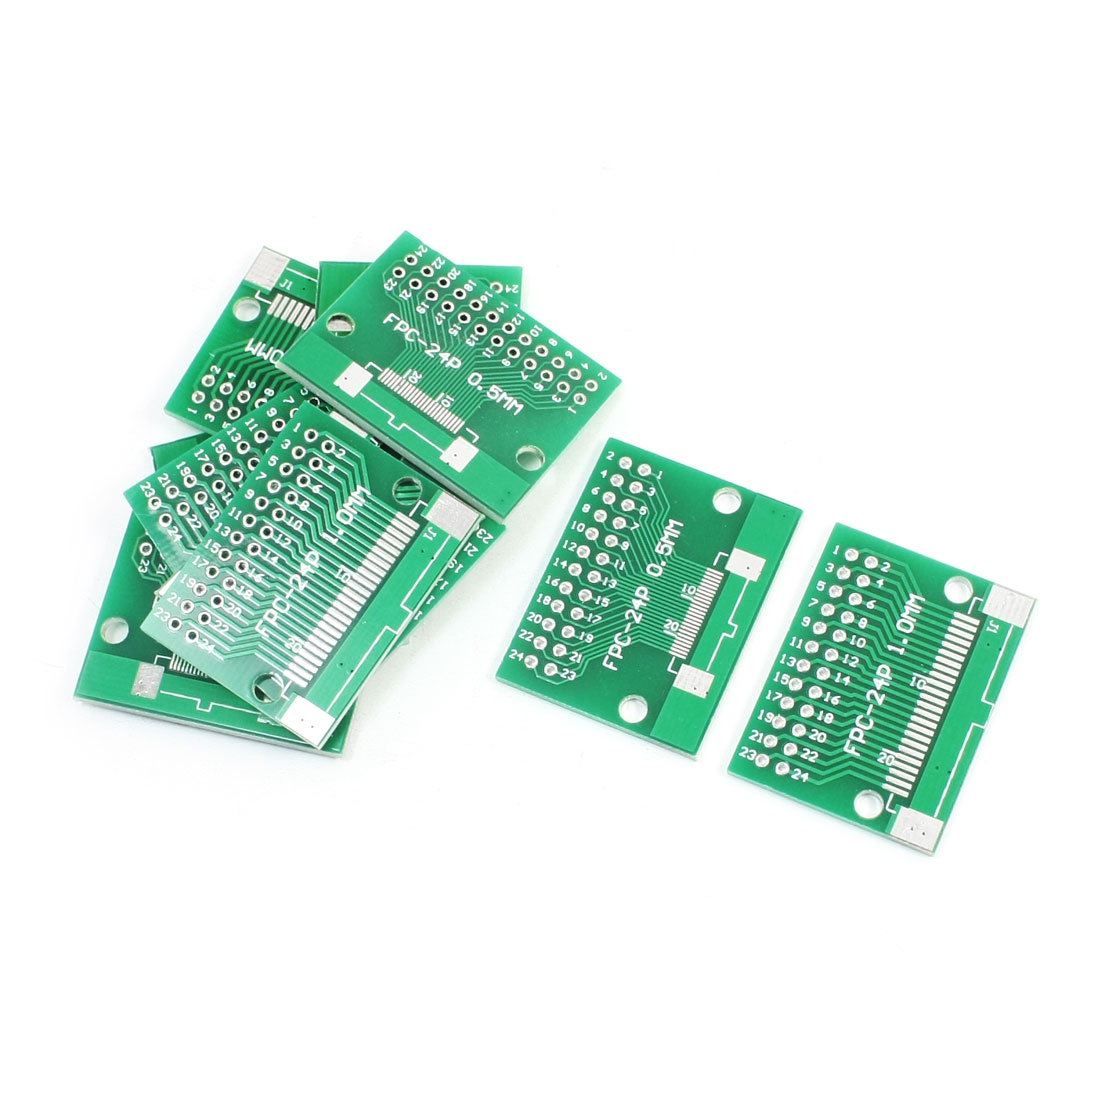 10 PCS FPC-24P FFC-24P 0.5mm 1mm to DIP24 2.54mm Pitch Double Sides IC PCB Board Adapter Plate Converter Socket